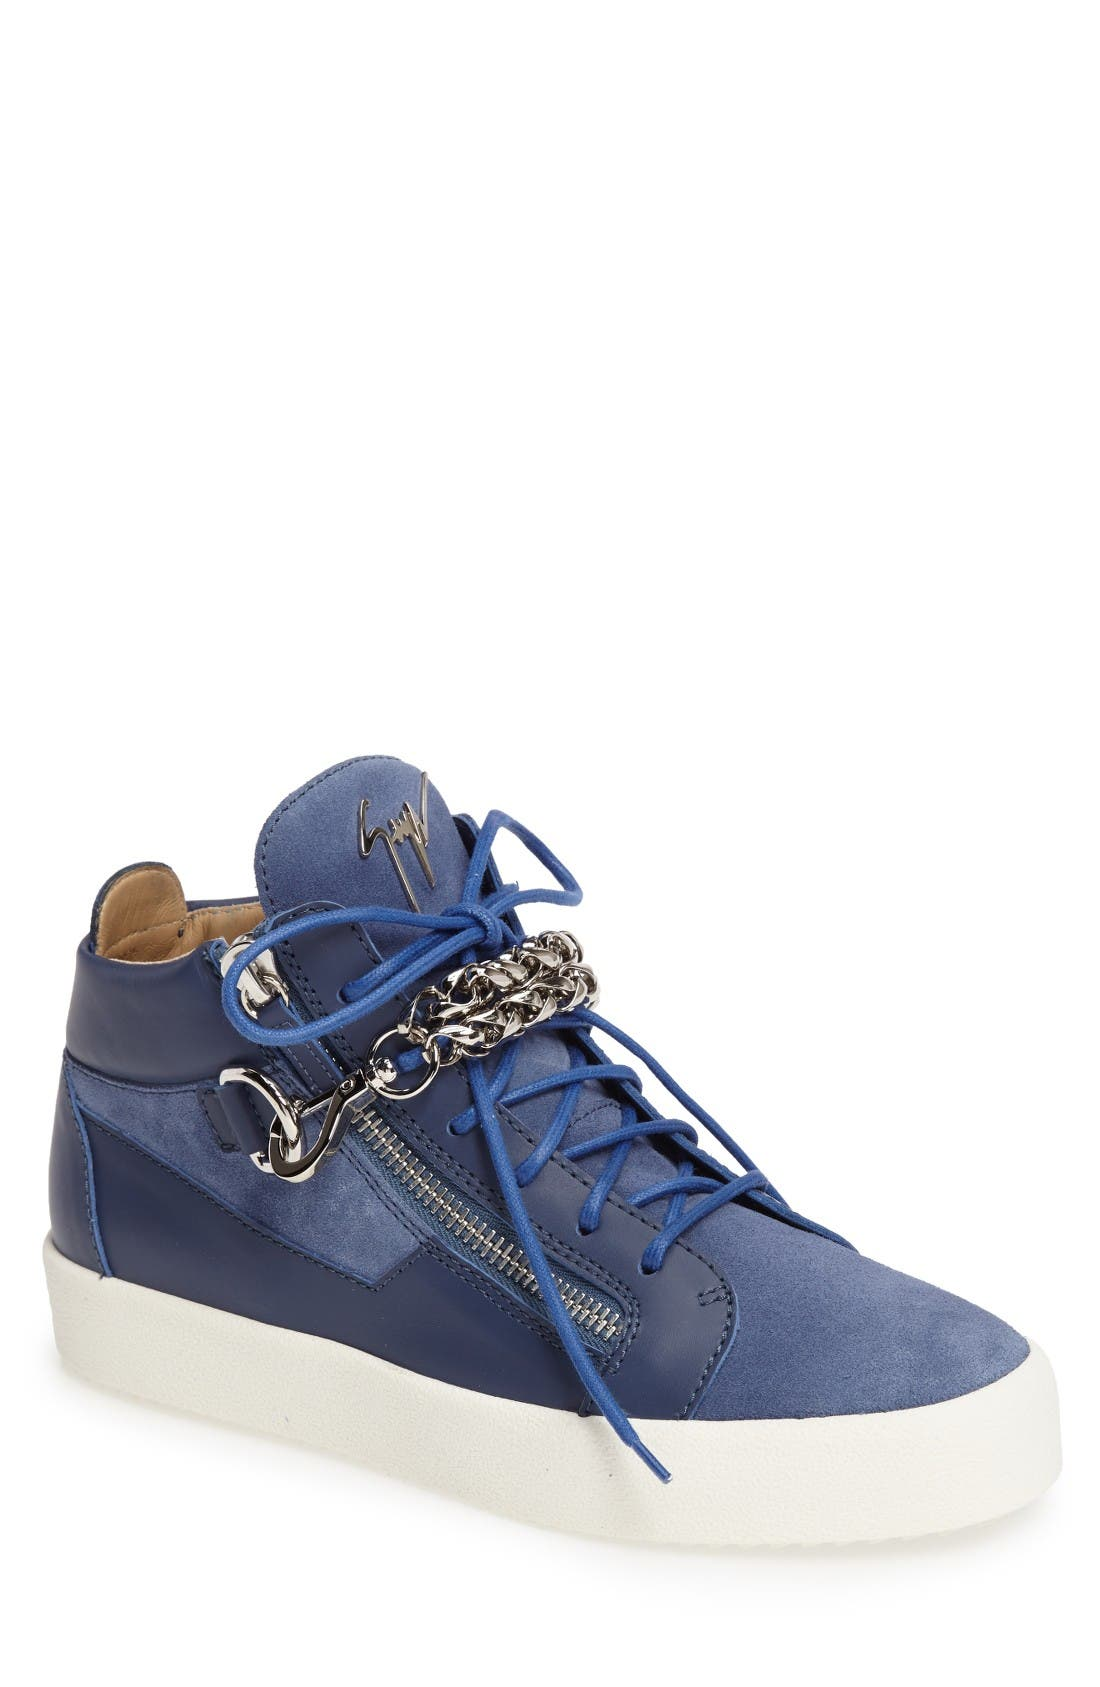 Chain Mid Top Sneaker,                             Main thumbnail 1, color,                             Blue Suede/ Leather